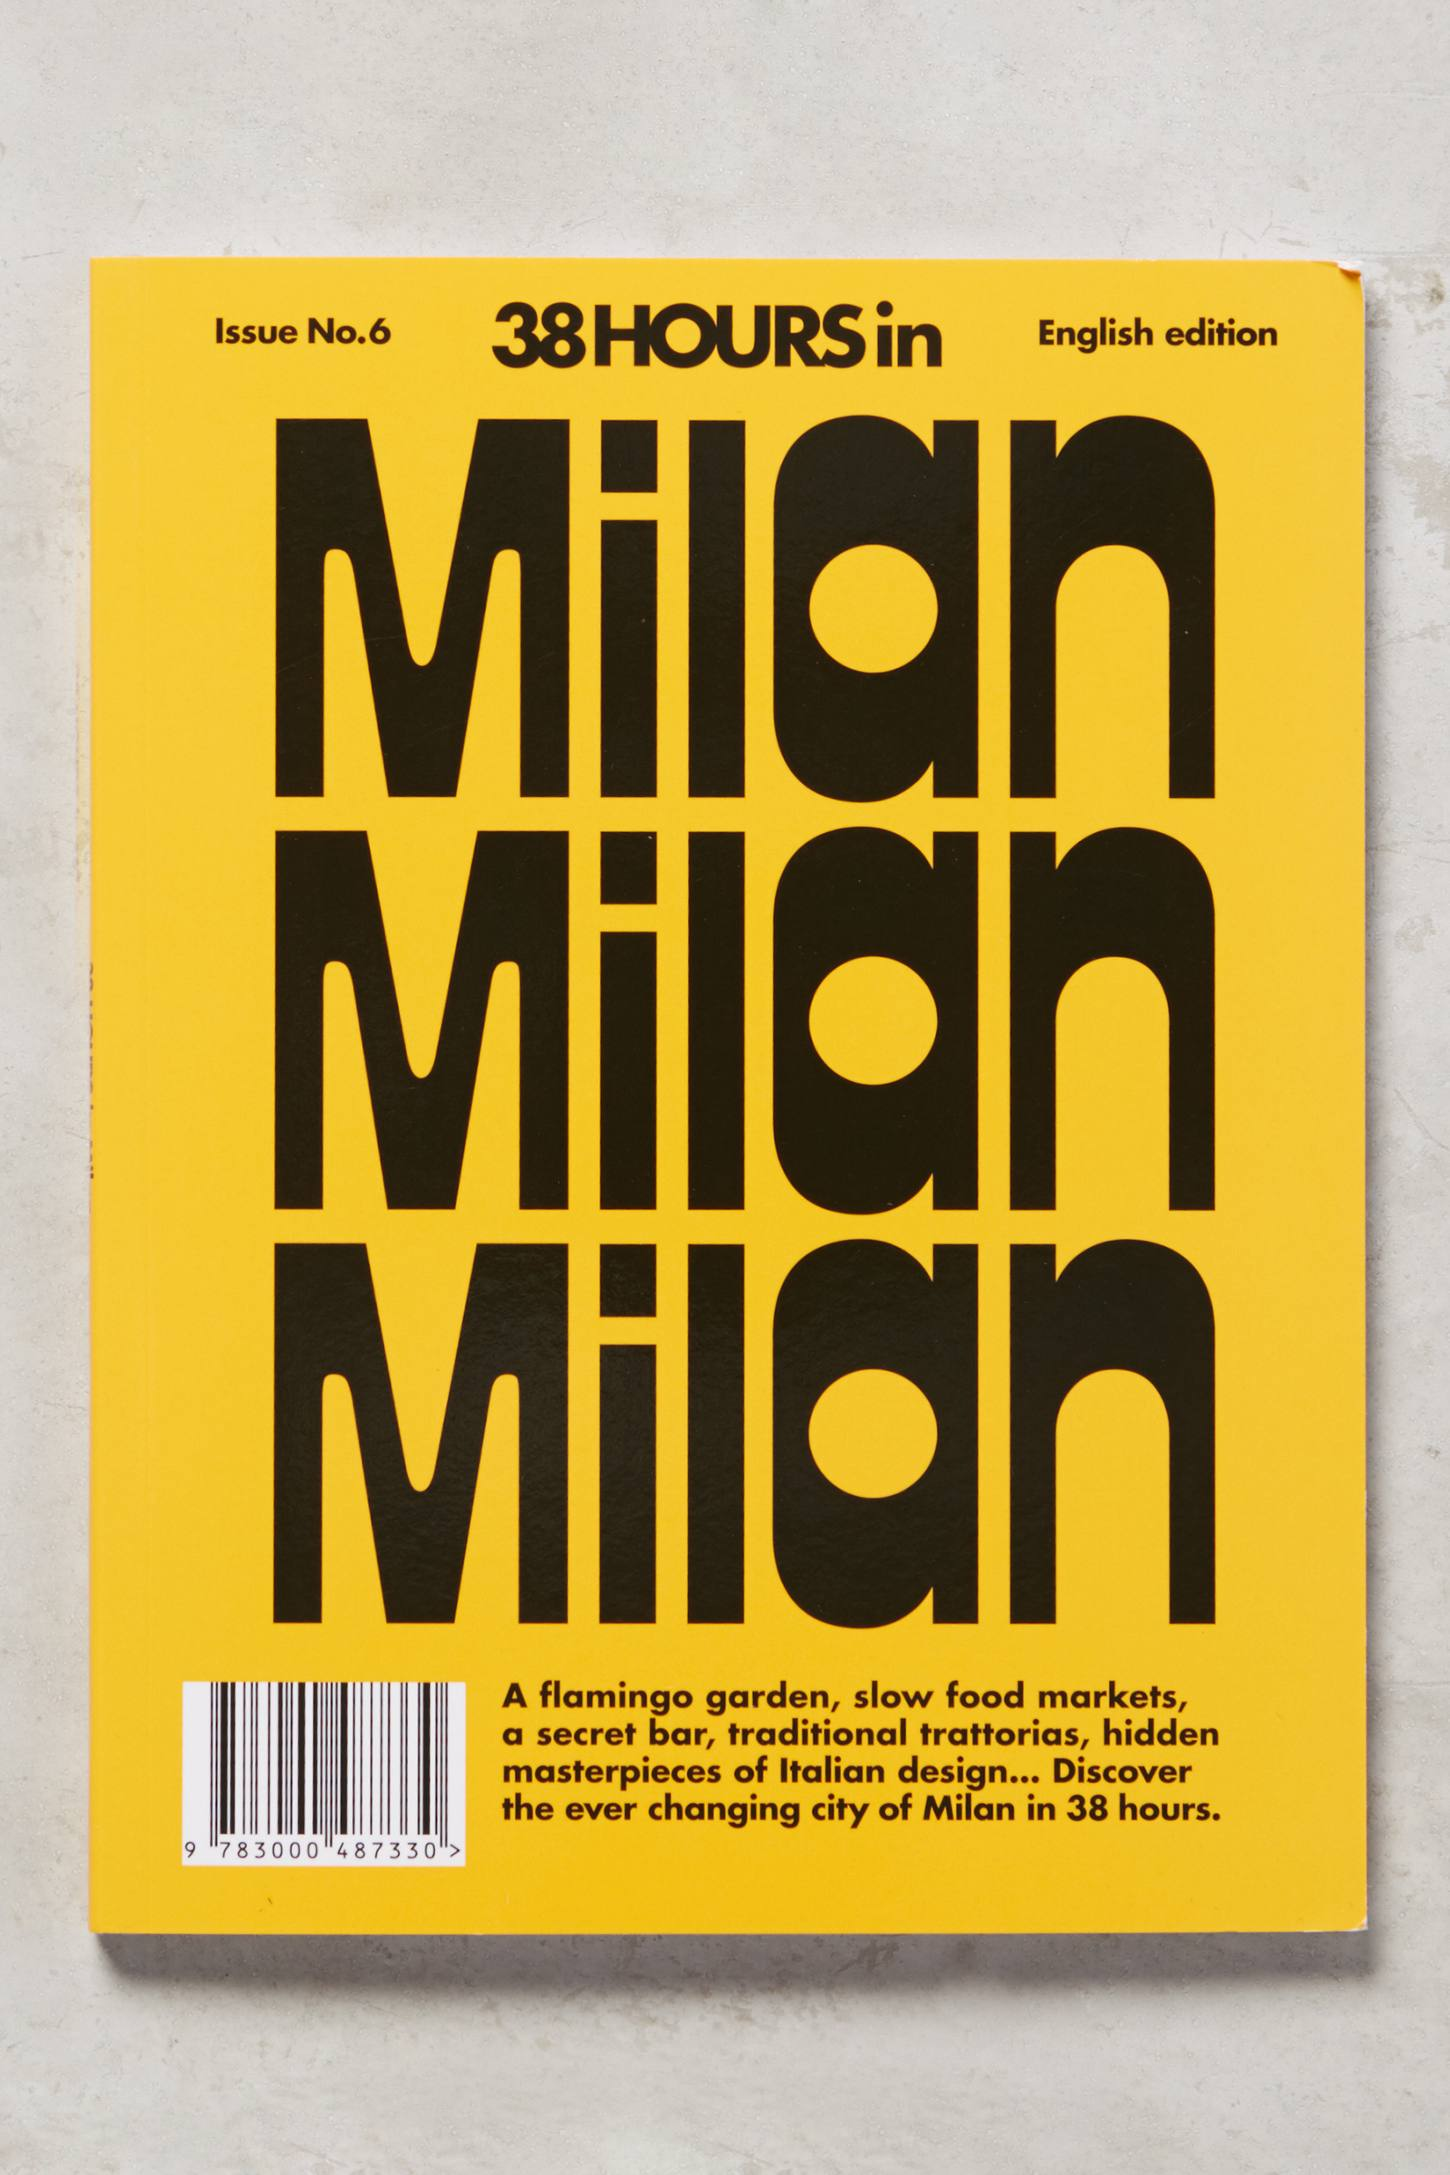 38HOURS Travel Guide Milan